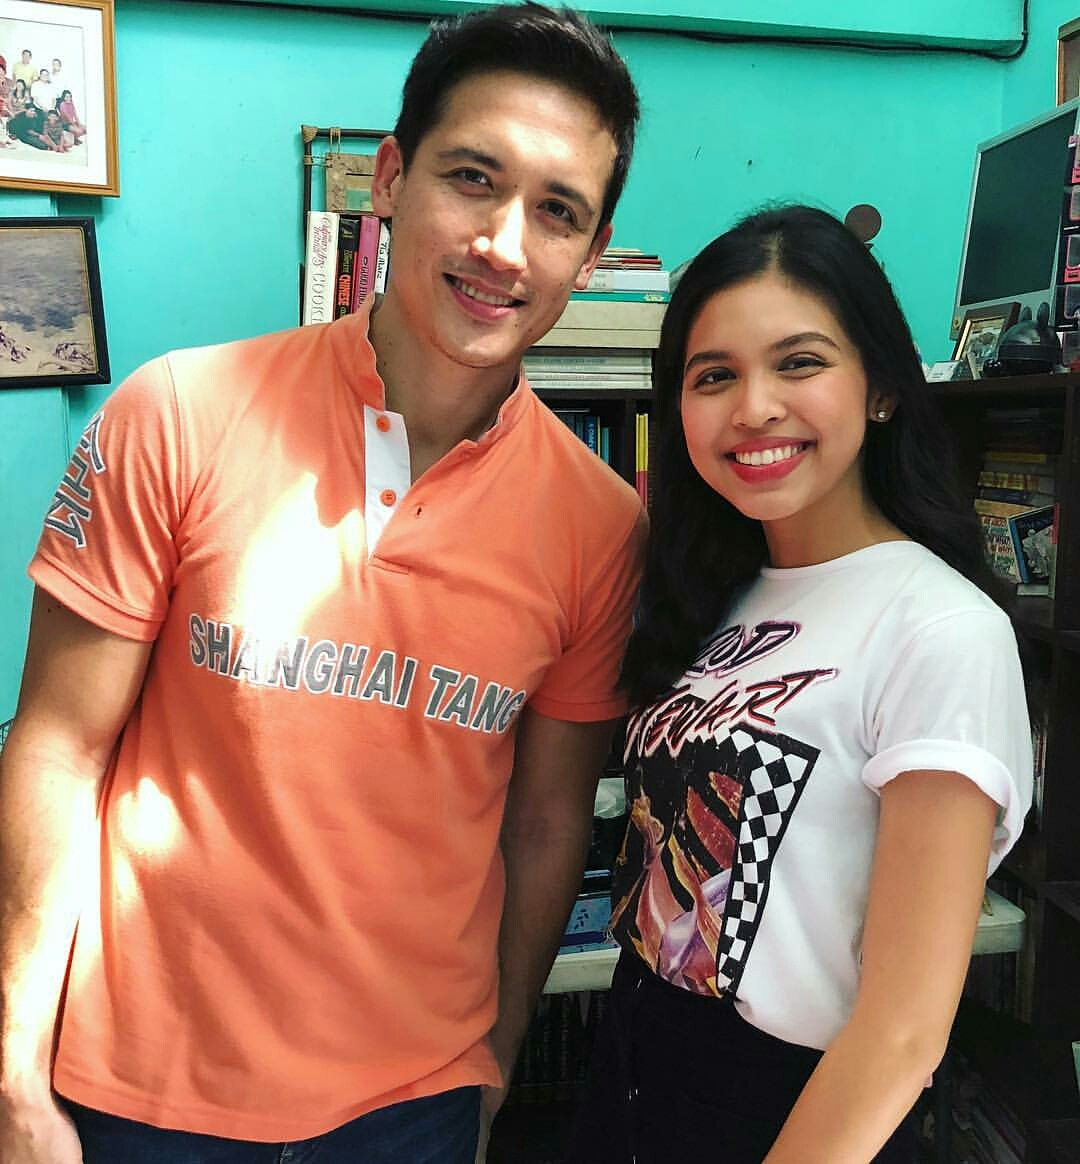 Quick photo with my Ate @mainedcm! Haha! @mainedcm 😚💕  © giansotto IG Update  #ALDUBMissNaMiss https://t.co/KqLH0pA6Er